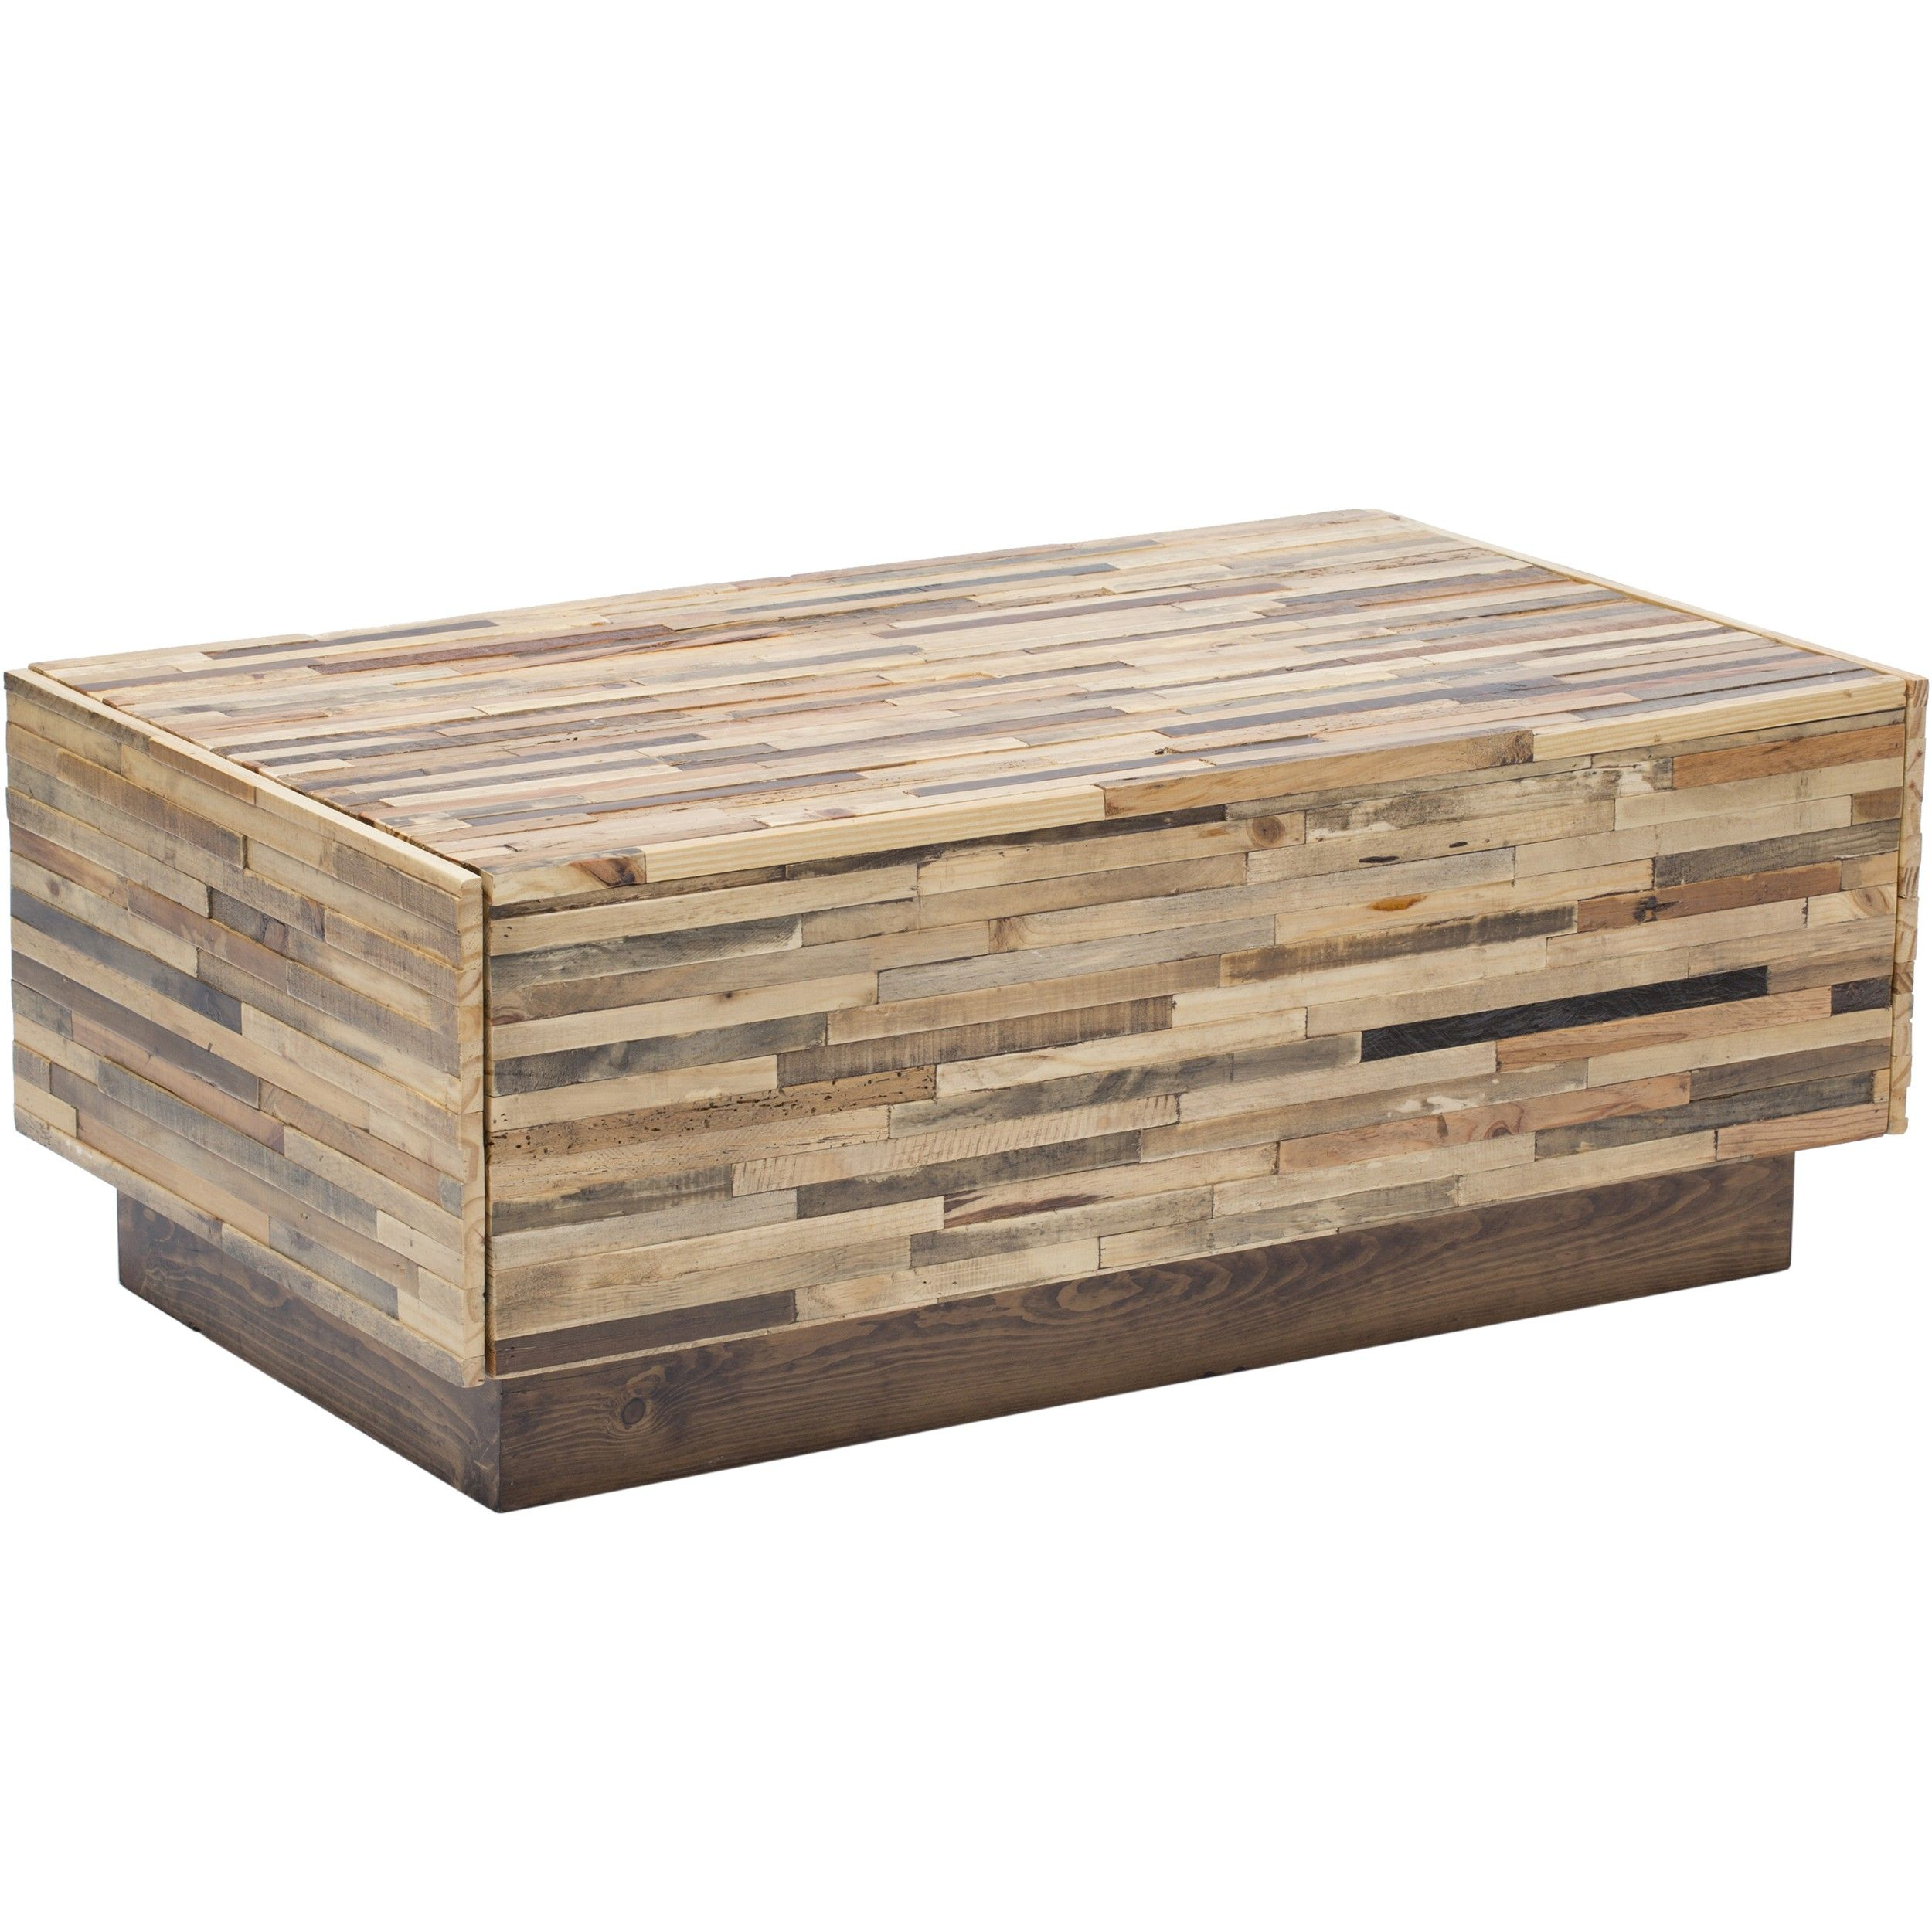 Caledonia reclaimed pine wood 2 drawer coffee table furniture accent tables coffee tables Pine coffee table with drawers